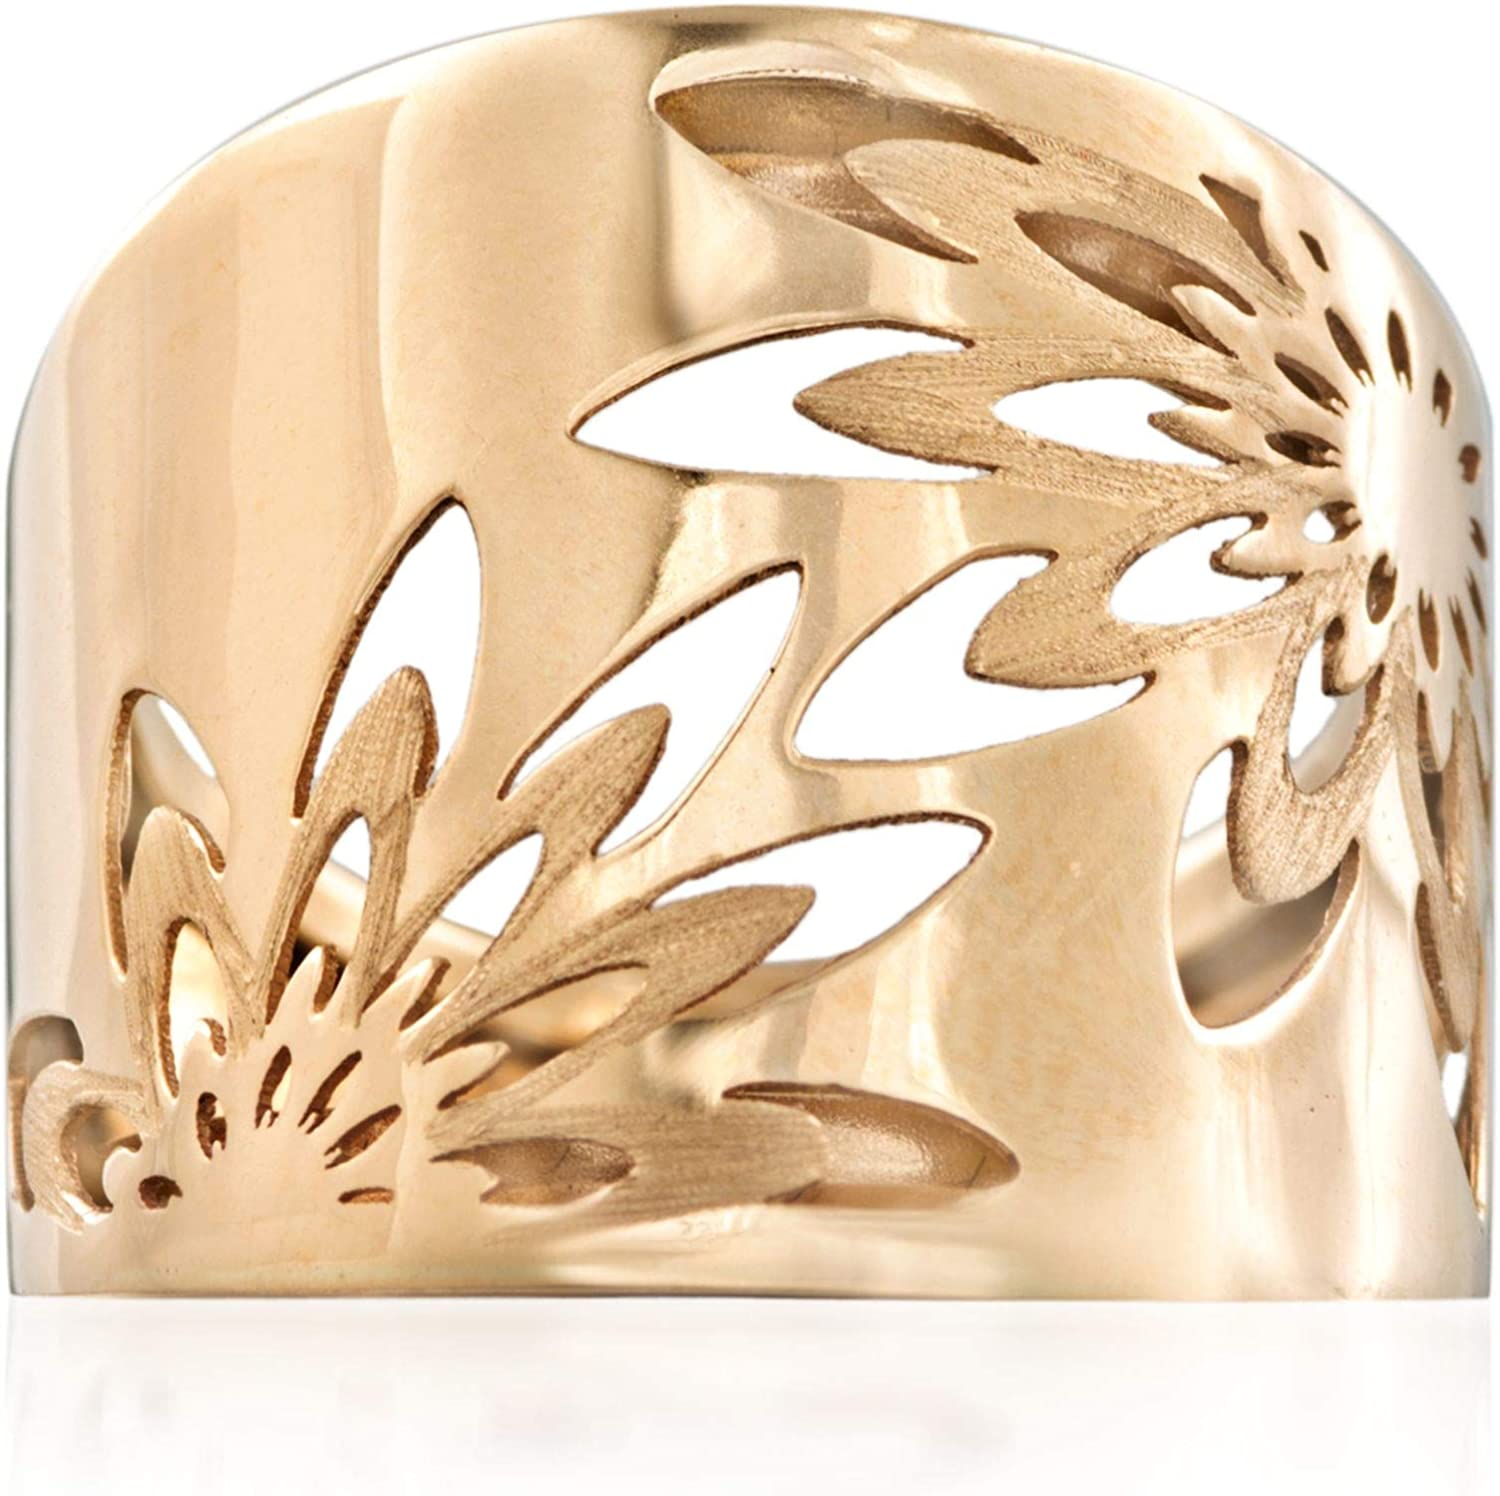 Ross-Simons Italian 14kt Yellow Gold Openwork Floral Ring For Women Made in Italy